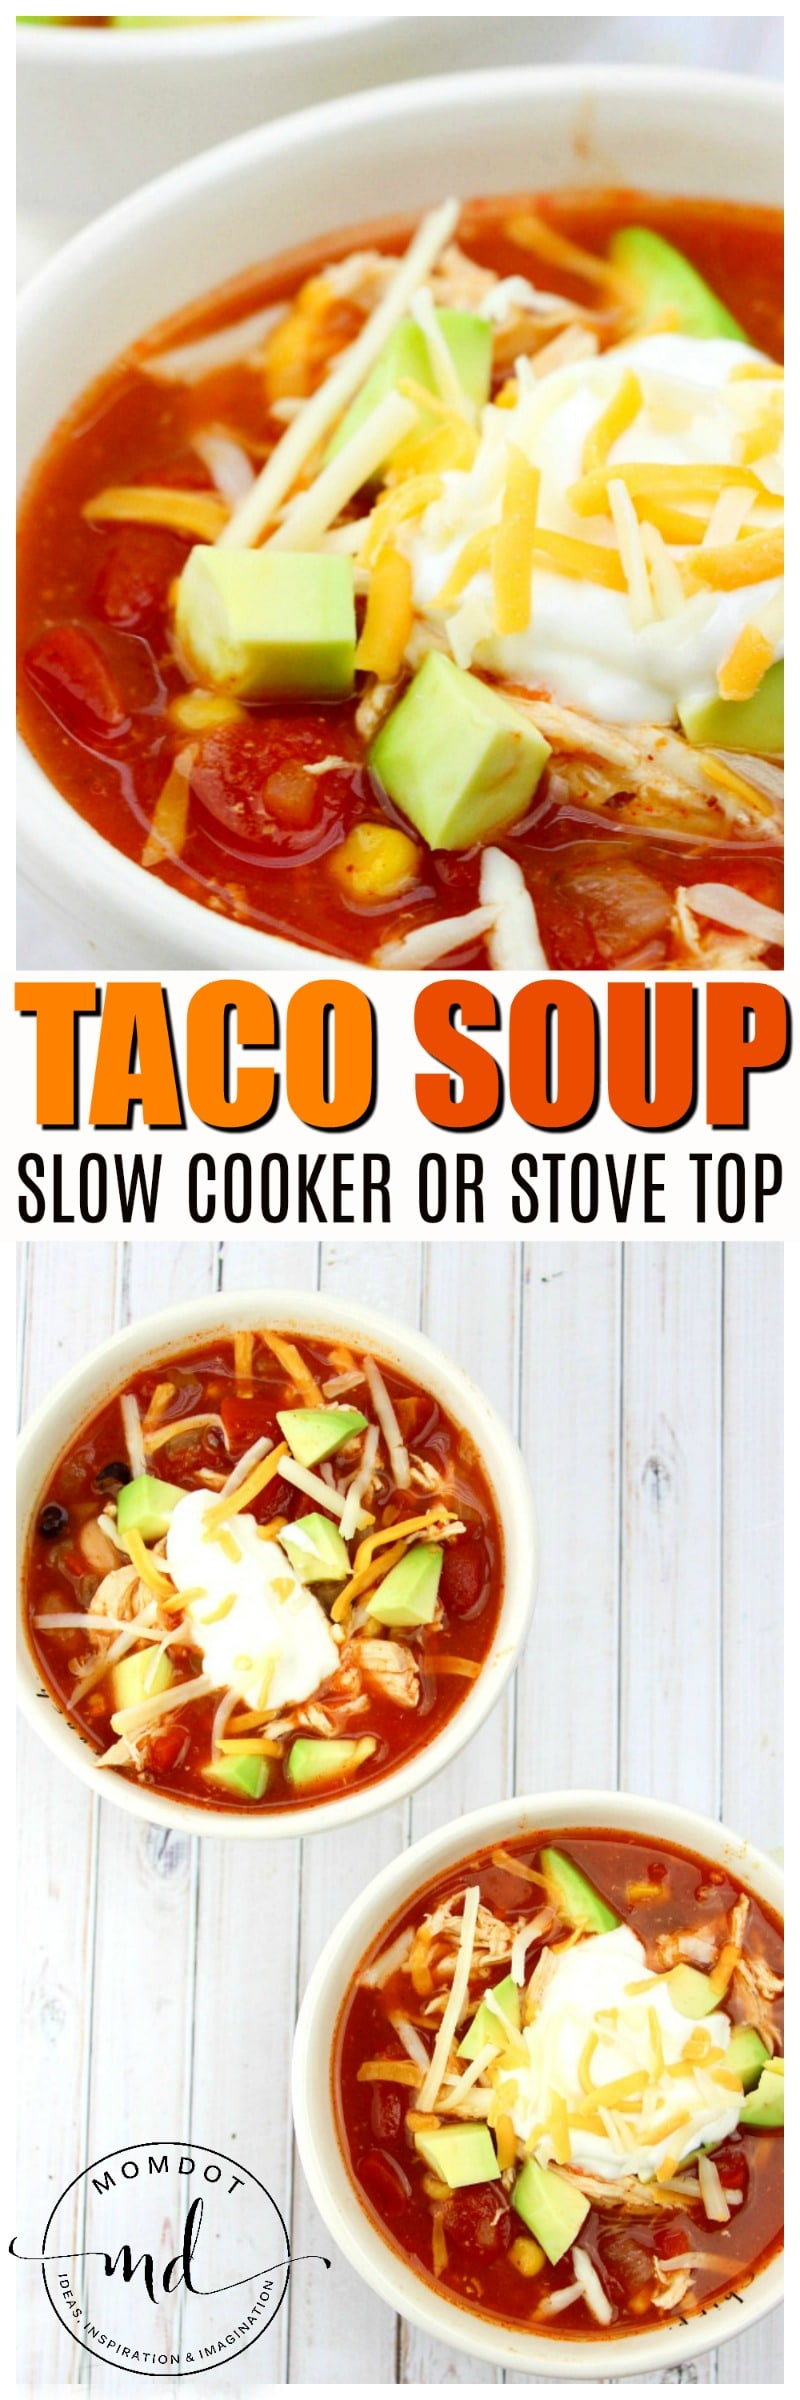 Taco Soup Recipe | Easy and Delicious on Stove or Slow Cooker | Perfect to Customize #tacos #taconight #recipe #food